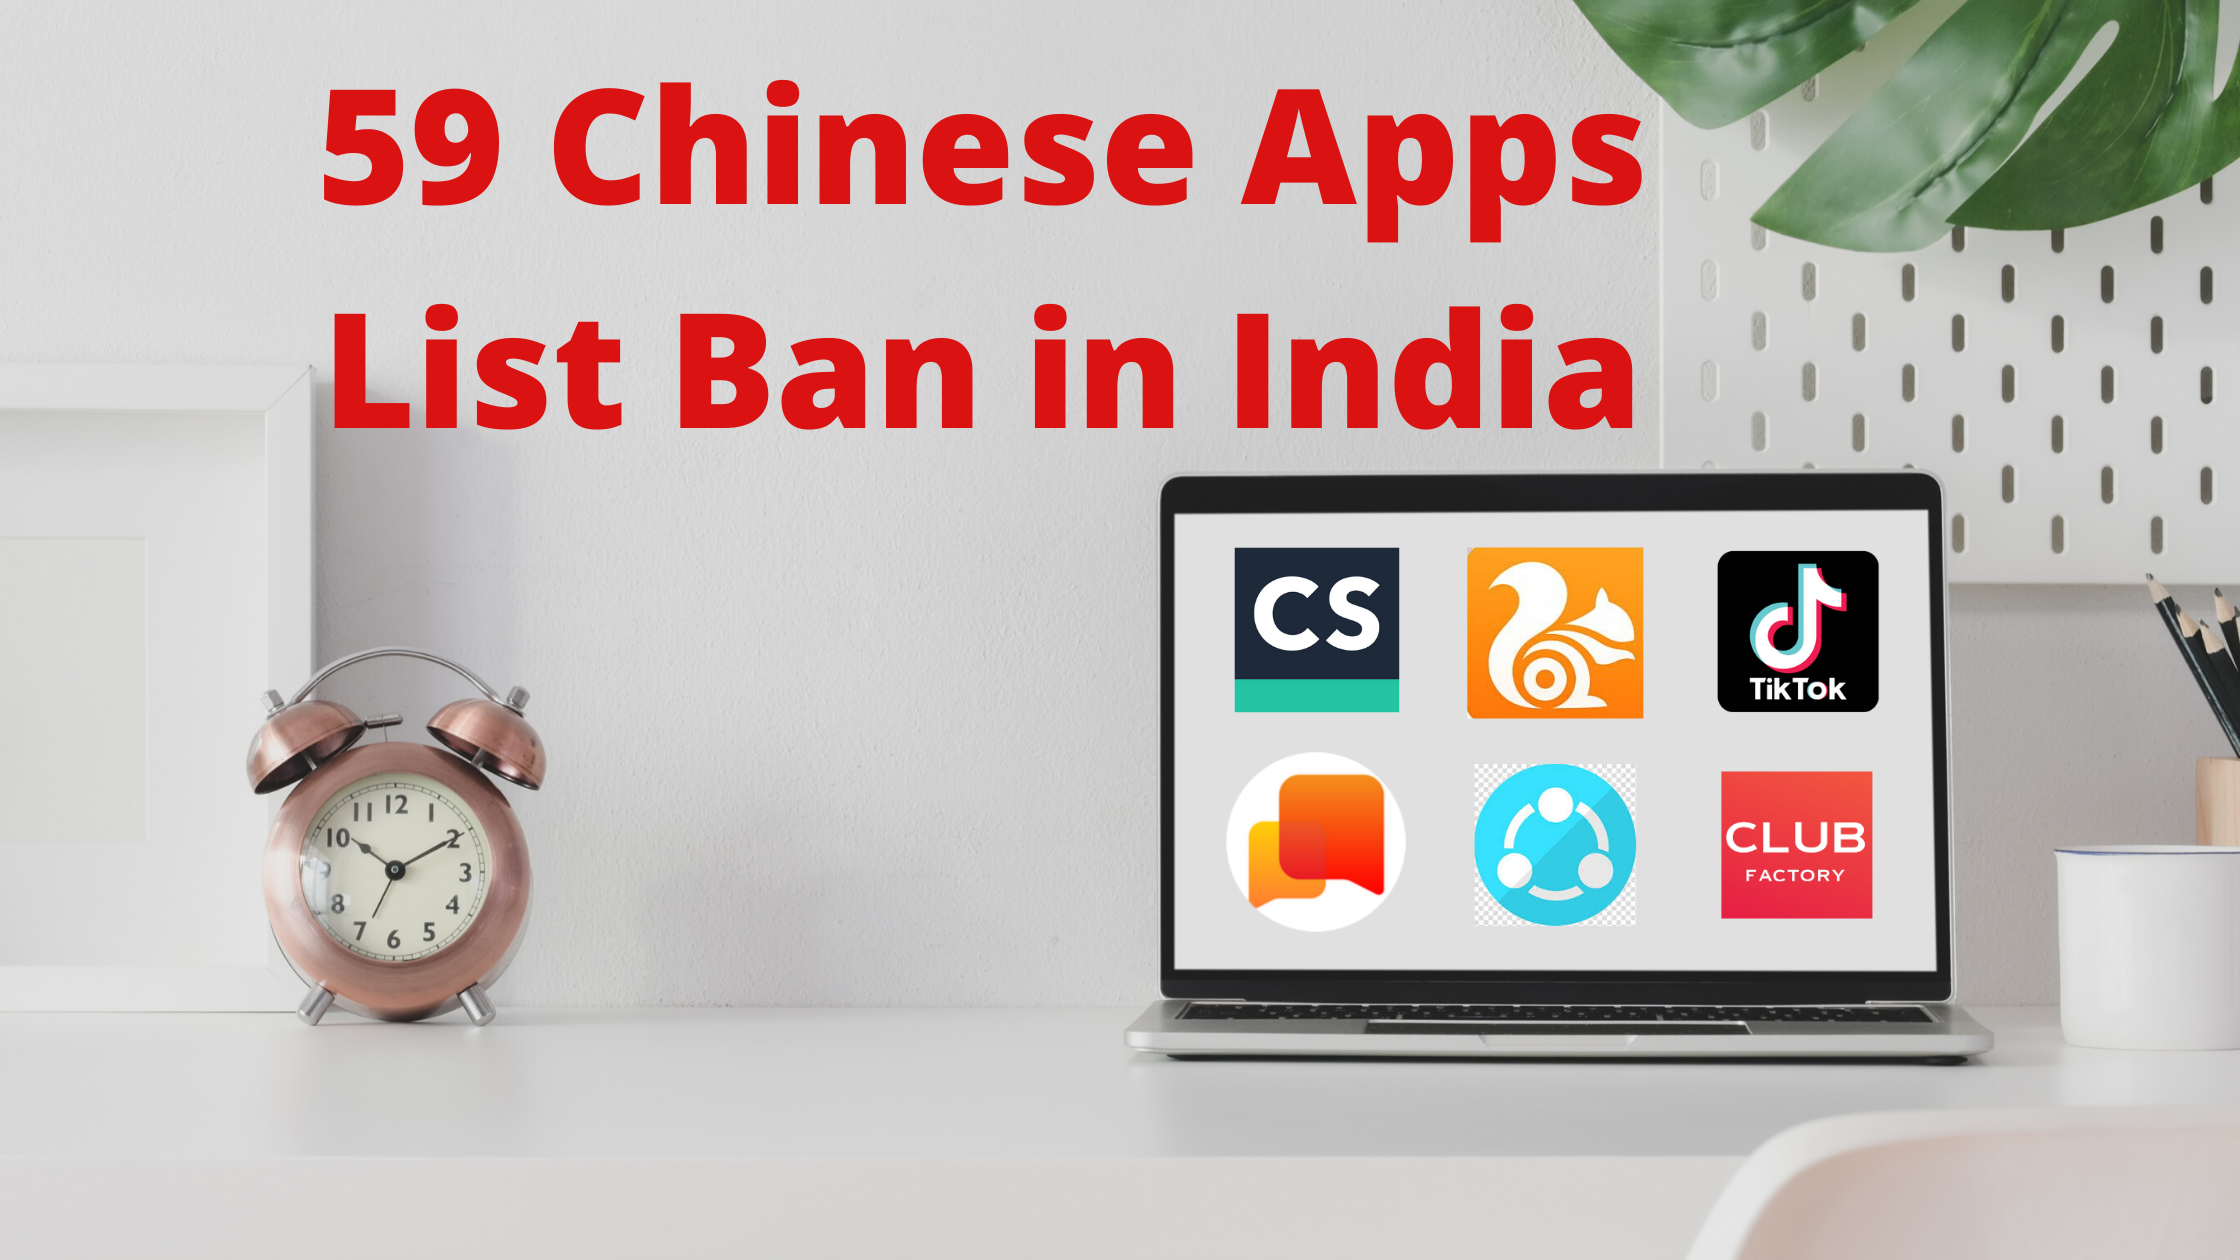 59 Chinese Apps List Ban in India